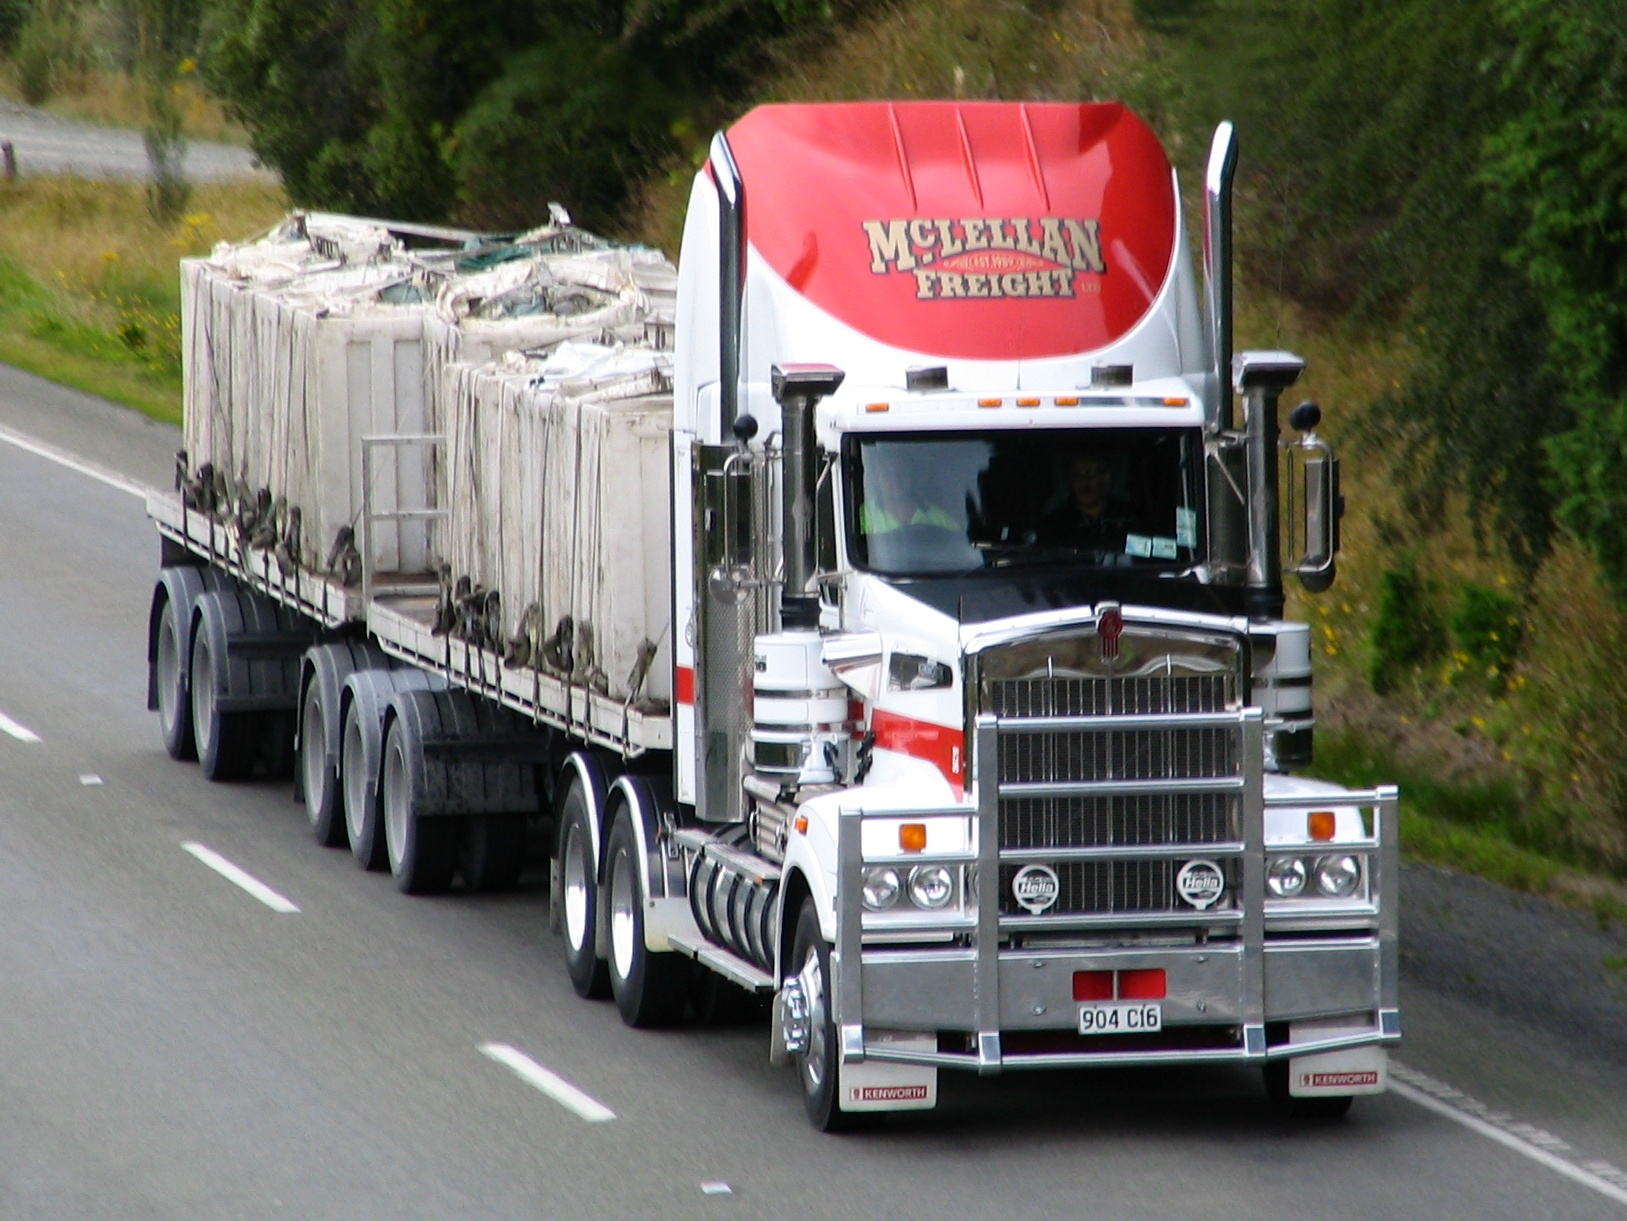 Gambling online during breaks gives extra income to truckers